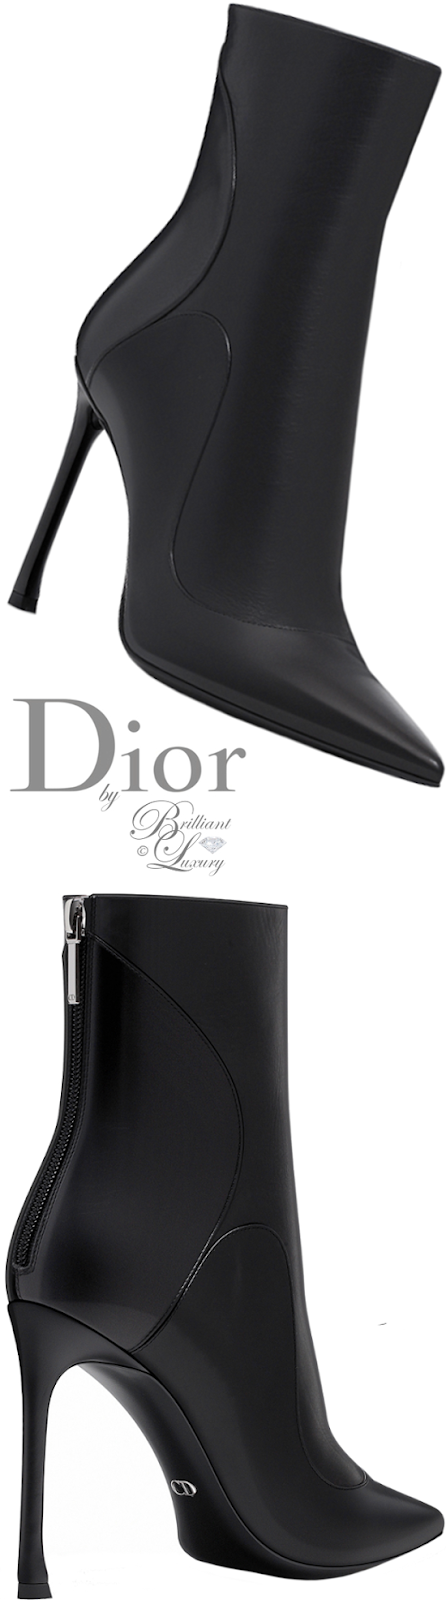 Brilliant Luxury ♦ Dior black smooth calfskin ankle boot